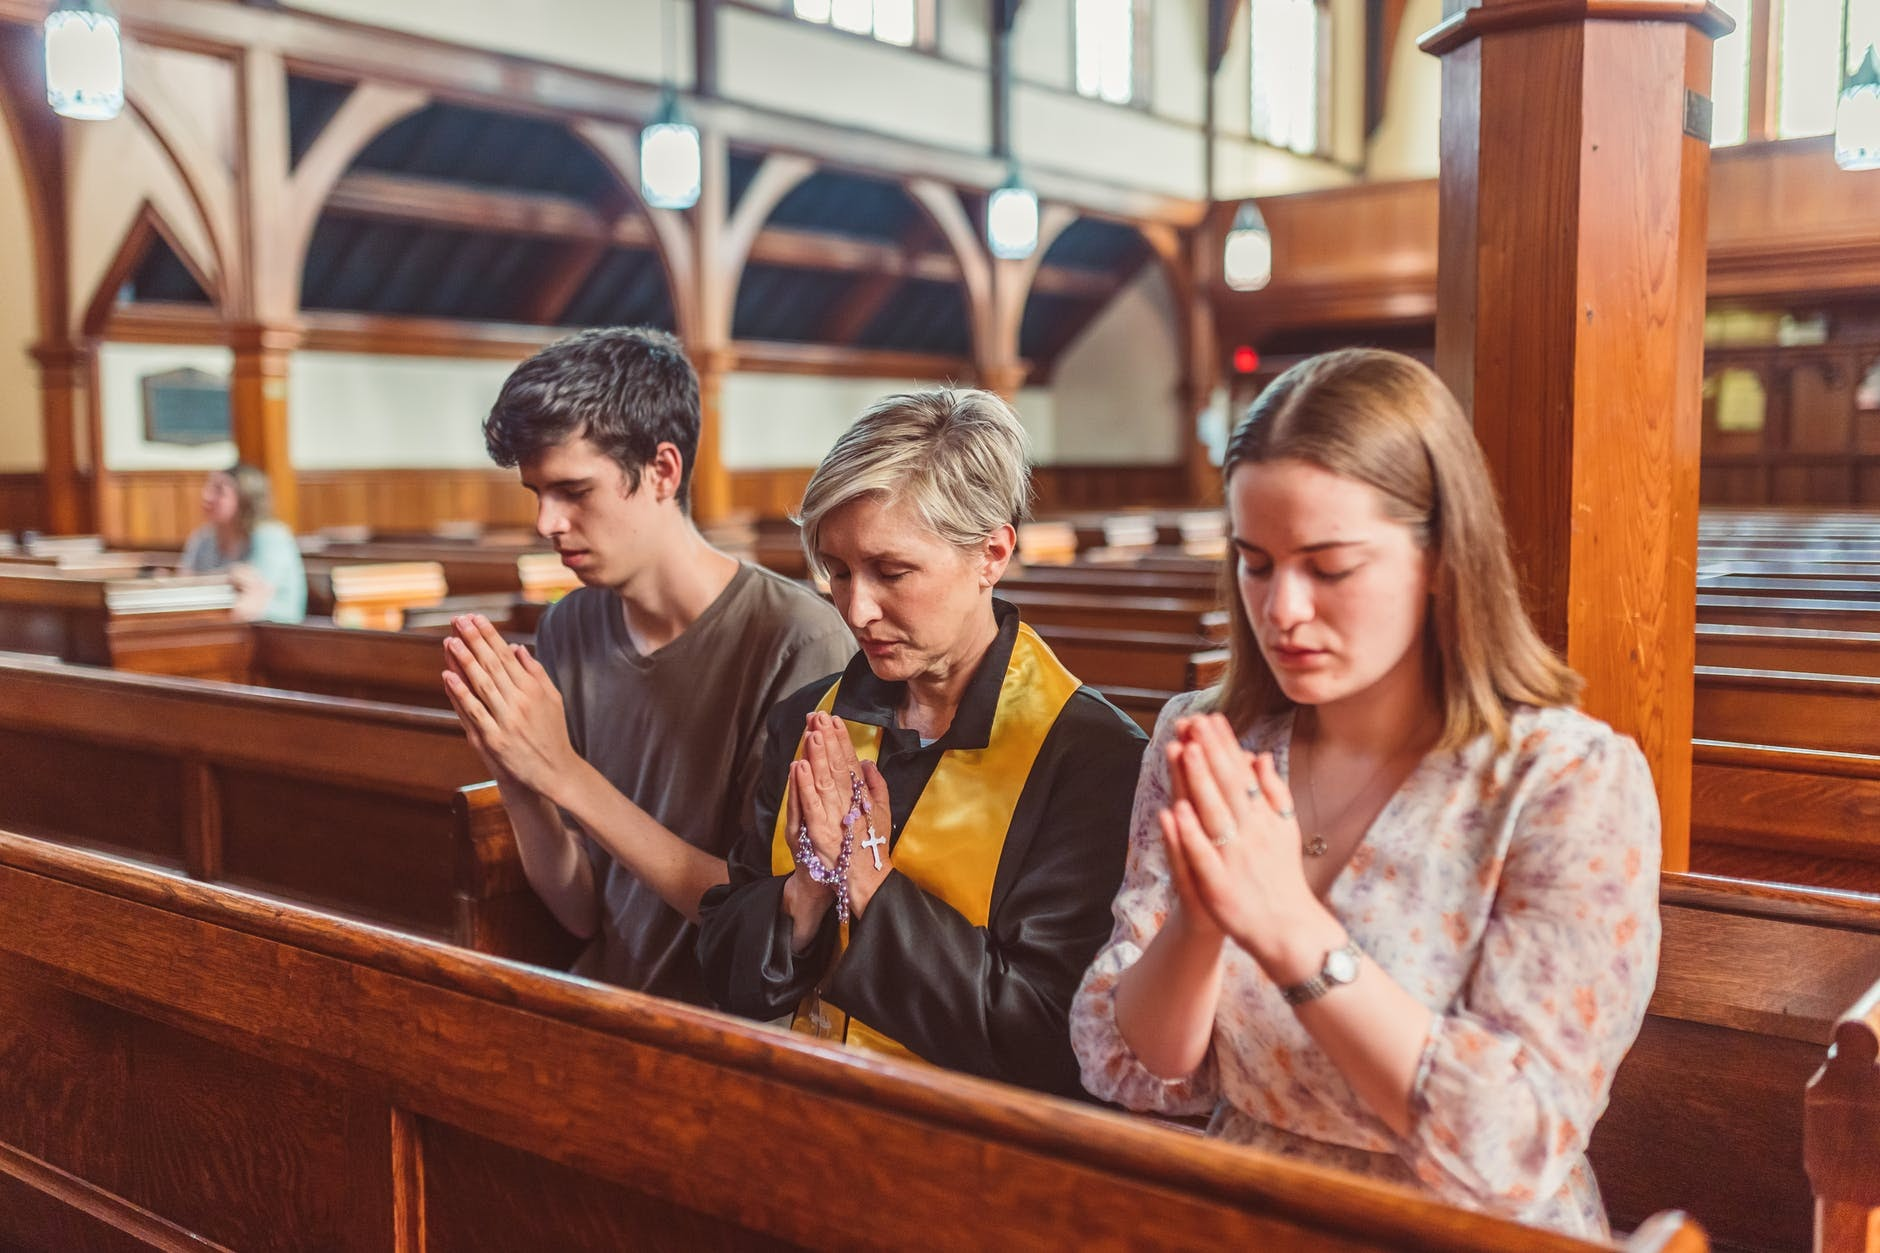 Three people praying together in church.